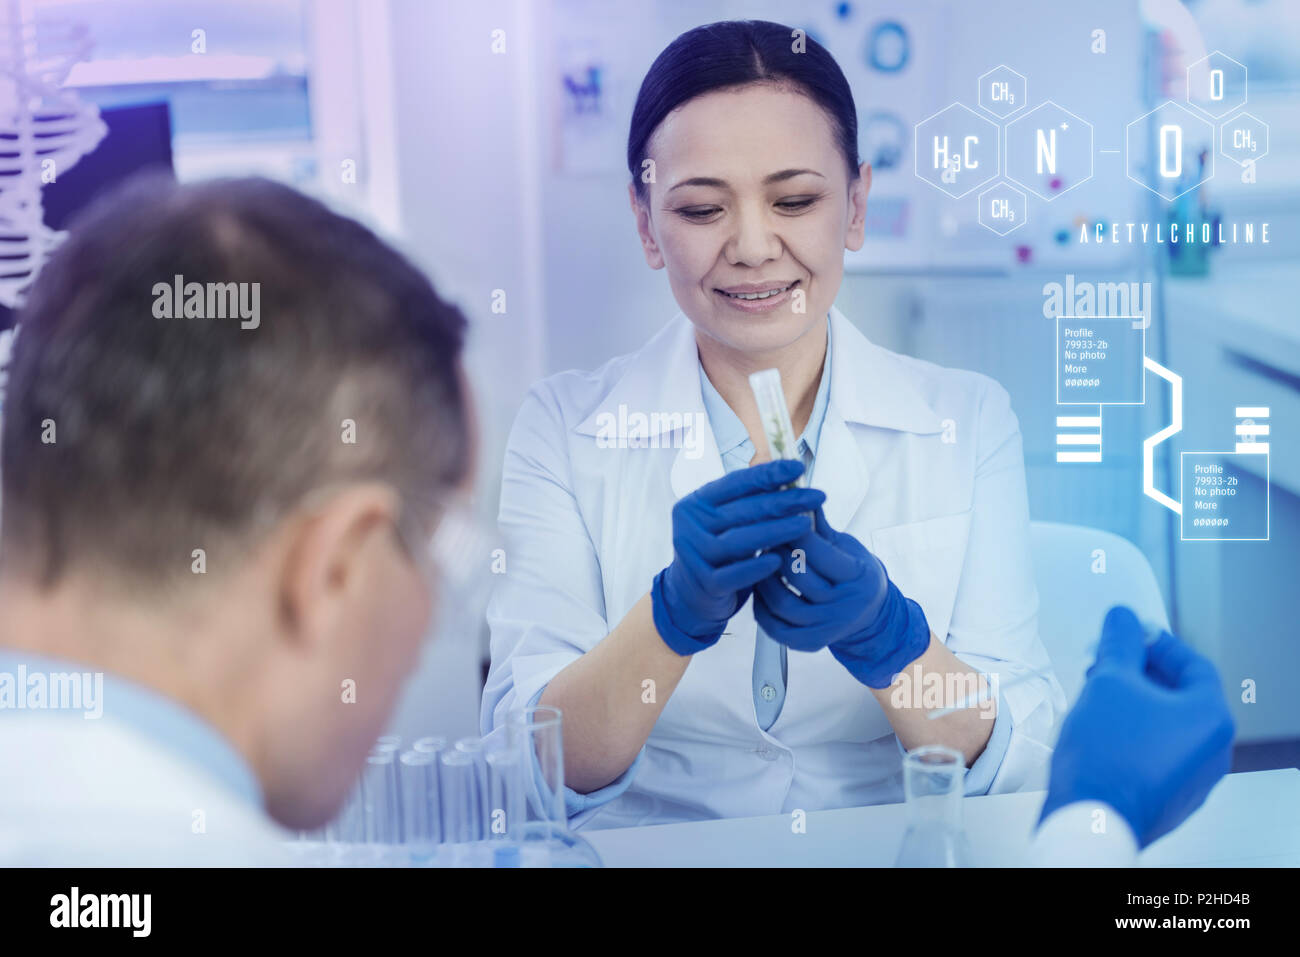 Calm biologist smiling while looking at the herb in a test tube - Stock Image